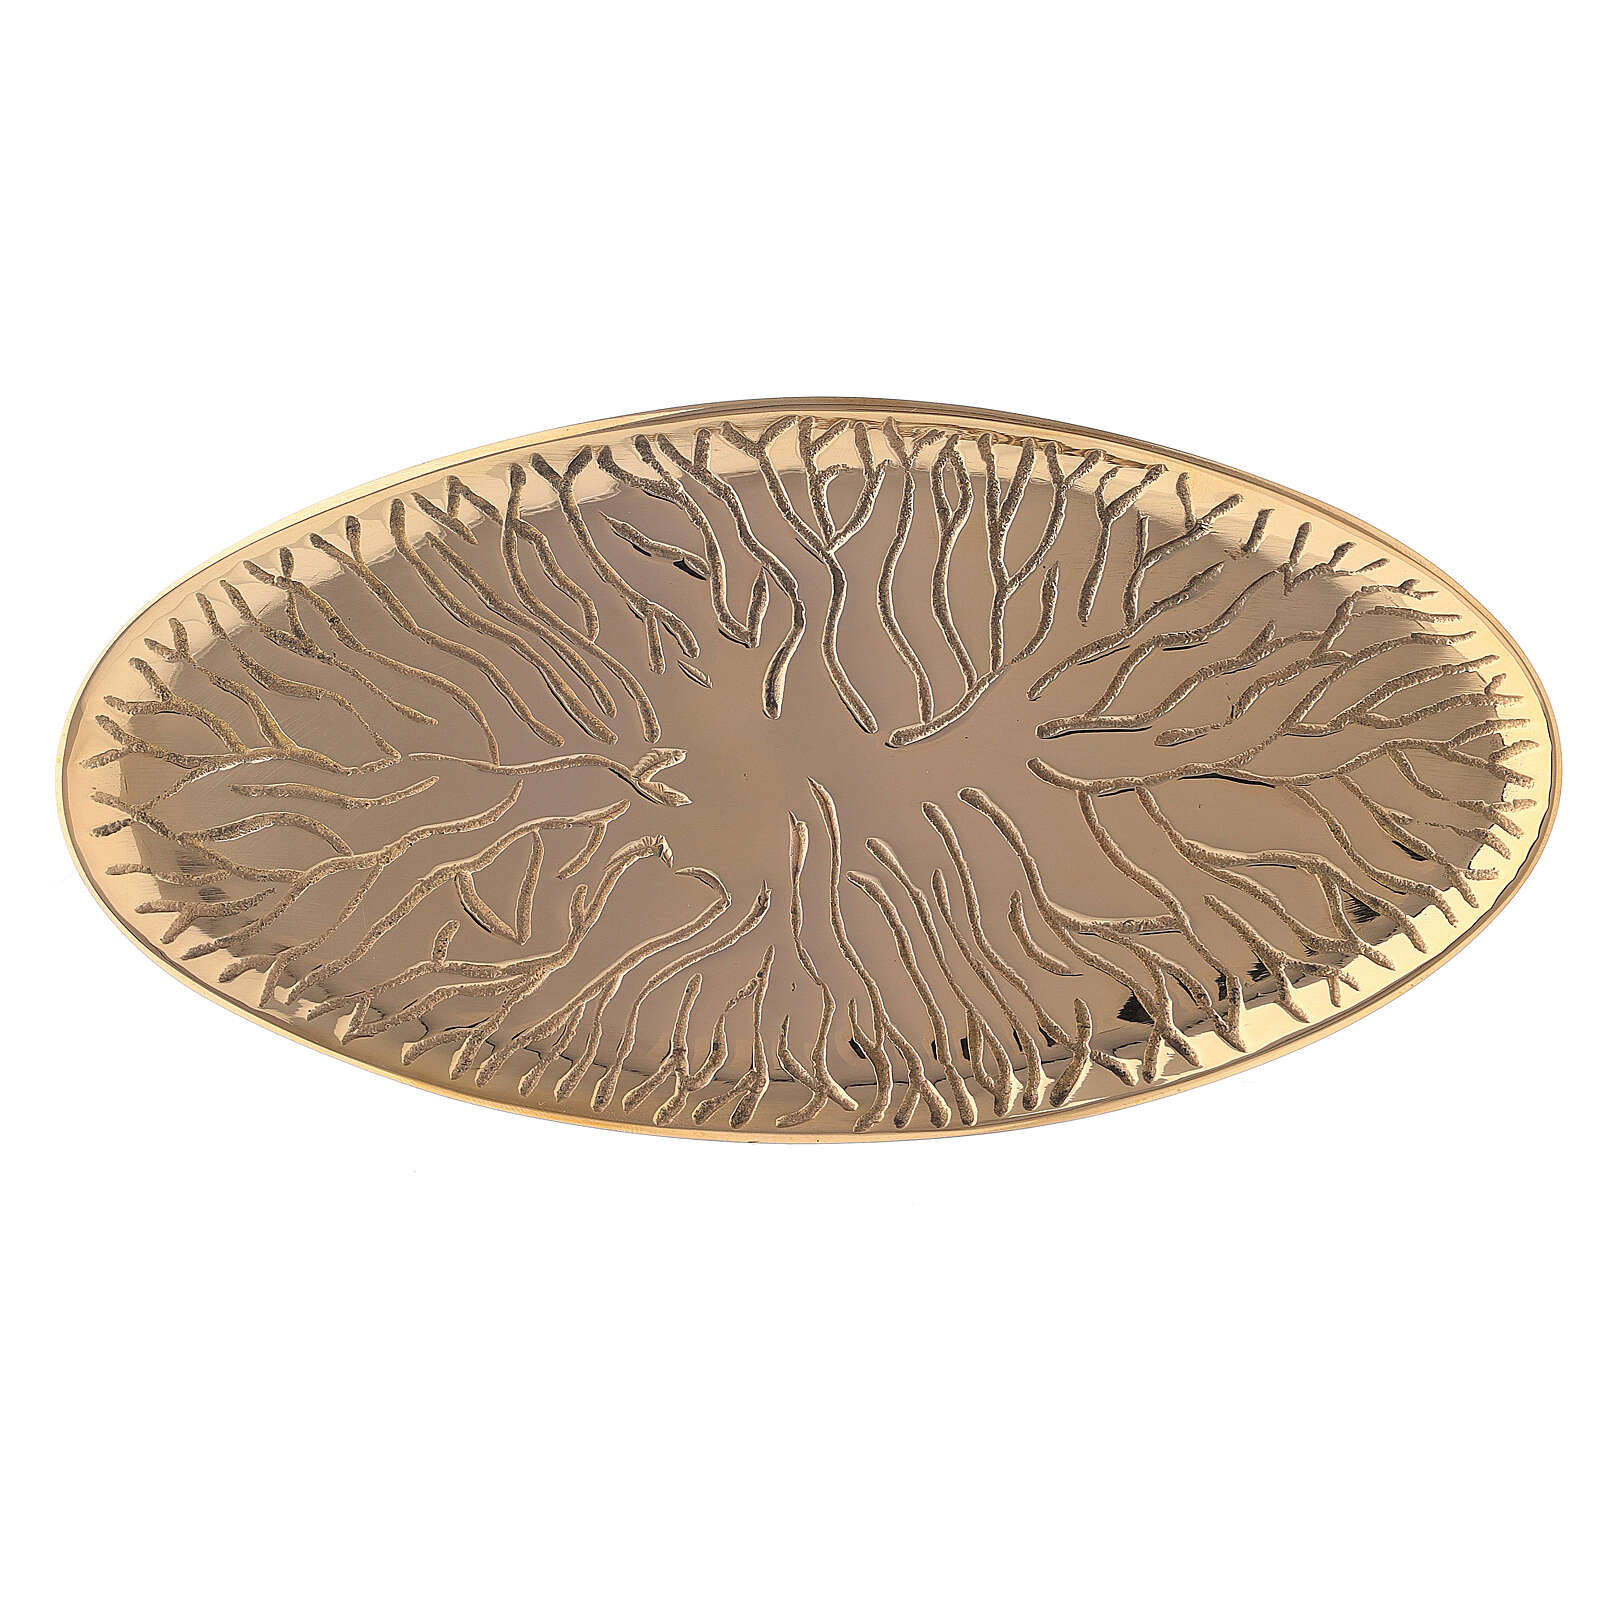 Oval candle holder plate with root design gold plated brass 7x3 1/2 in 3